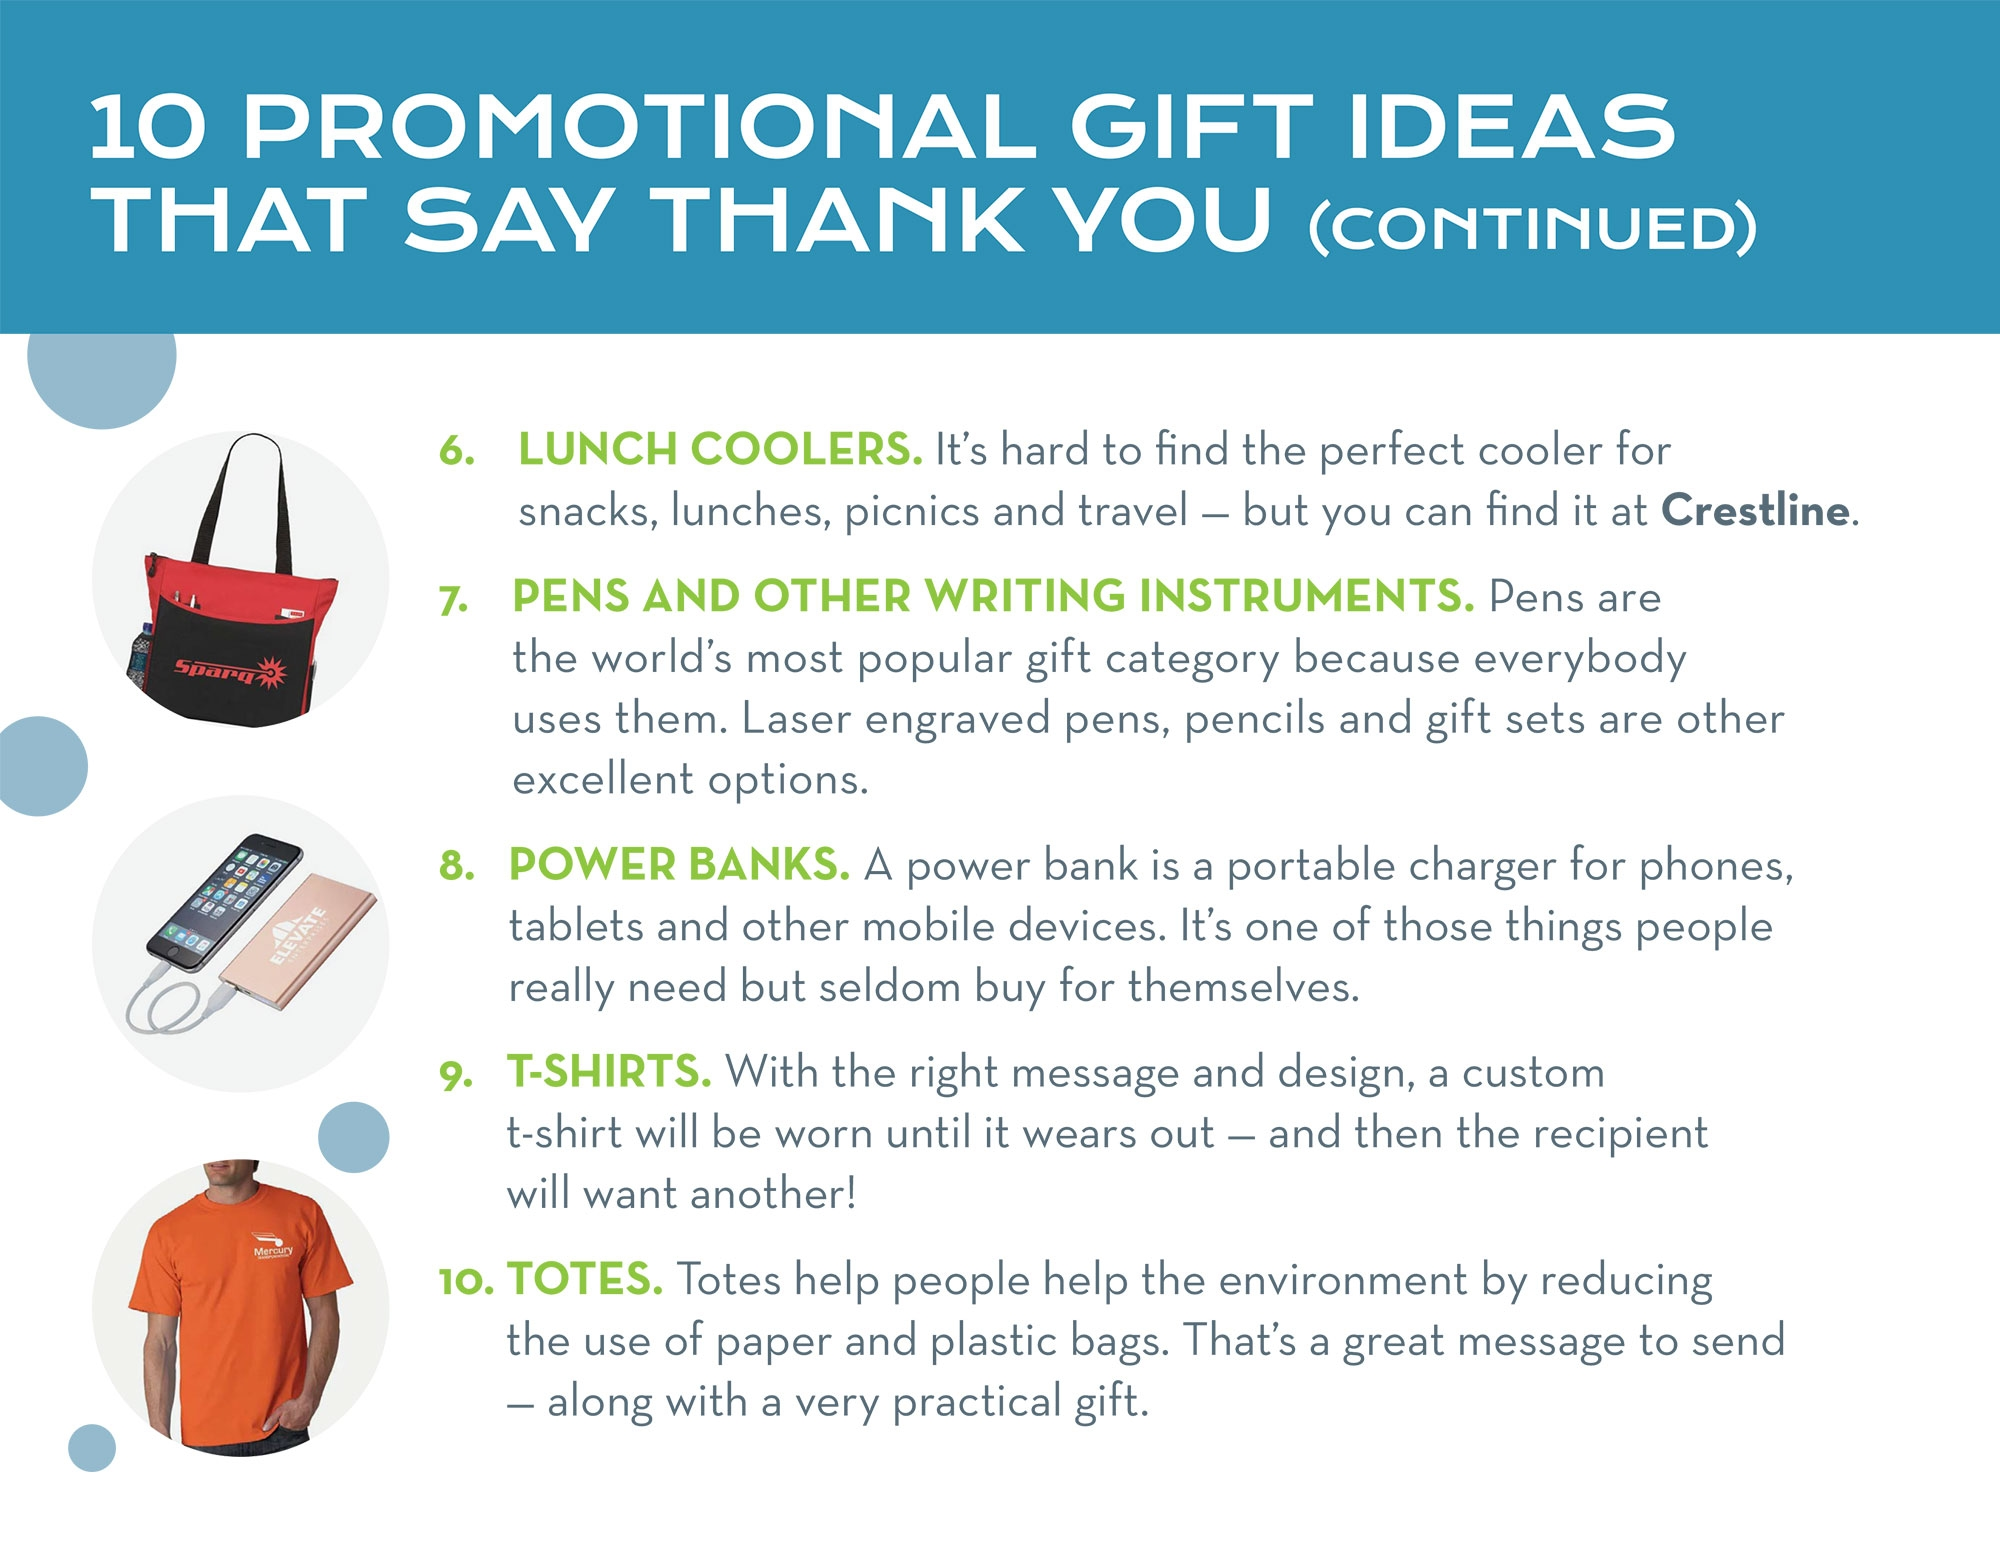 More Promotional Gift Ideas